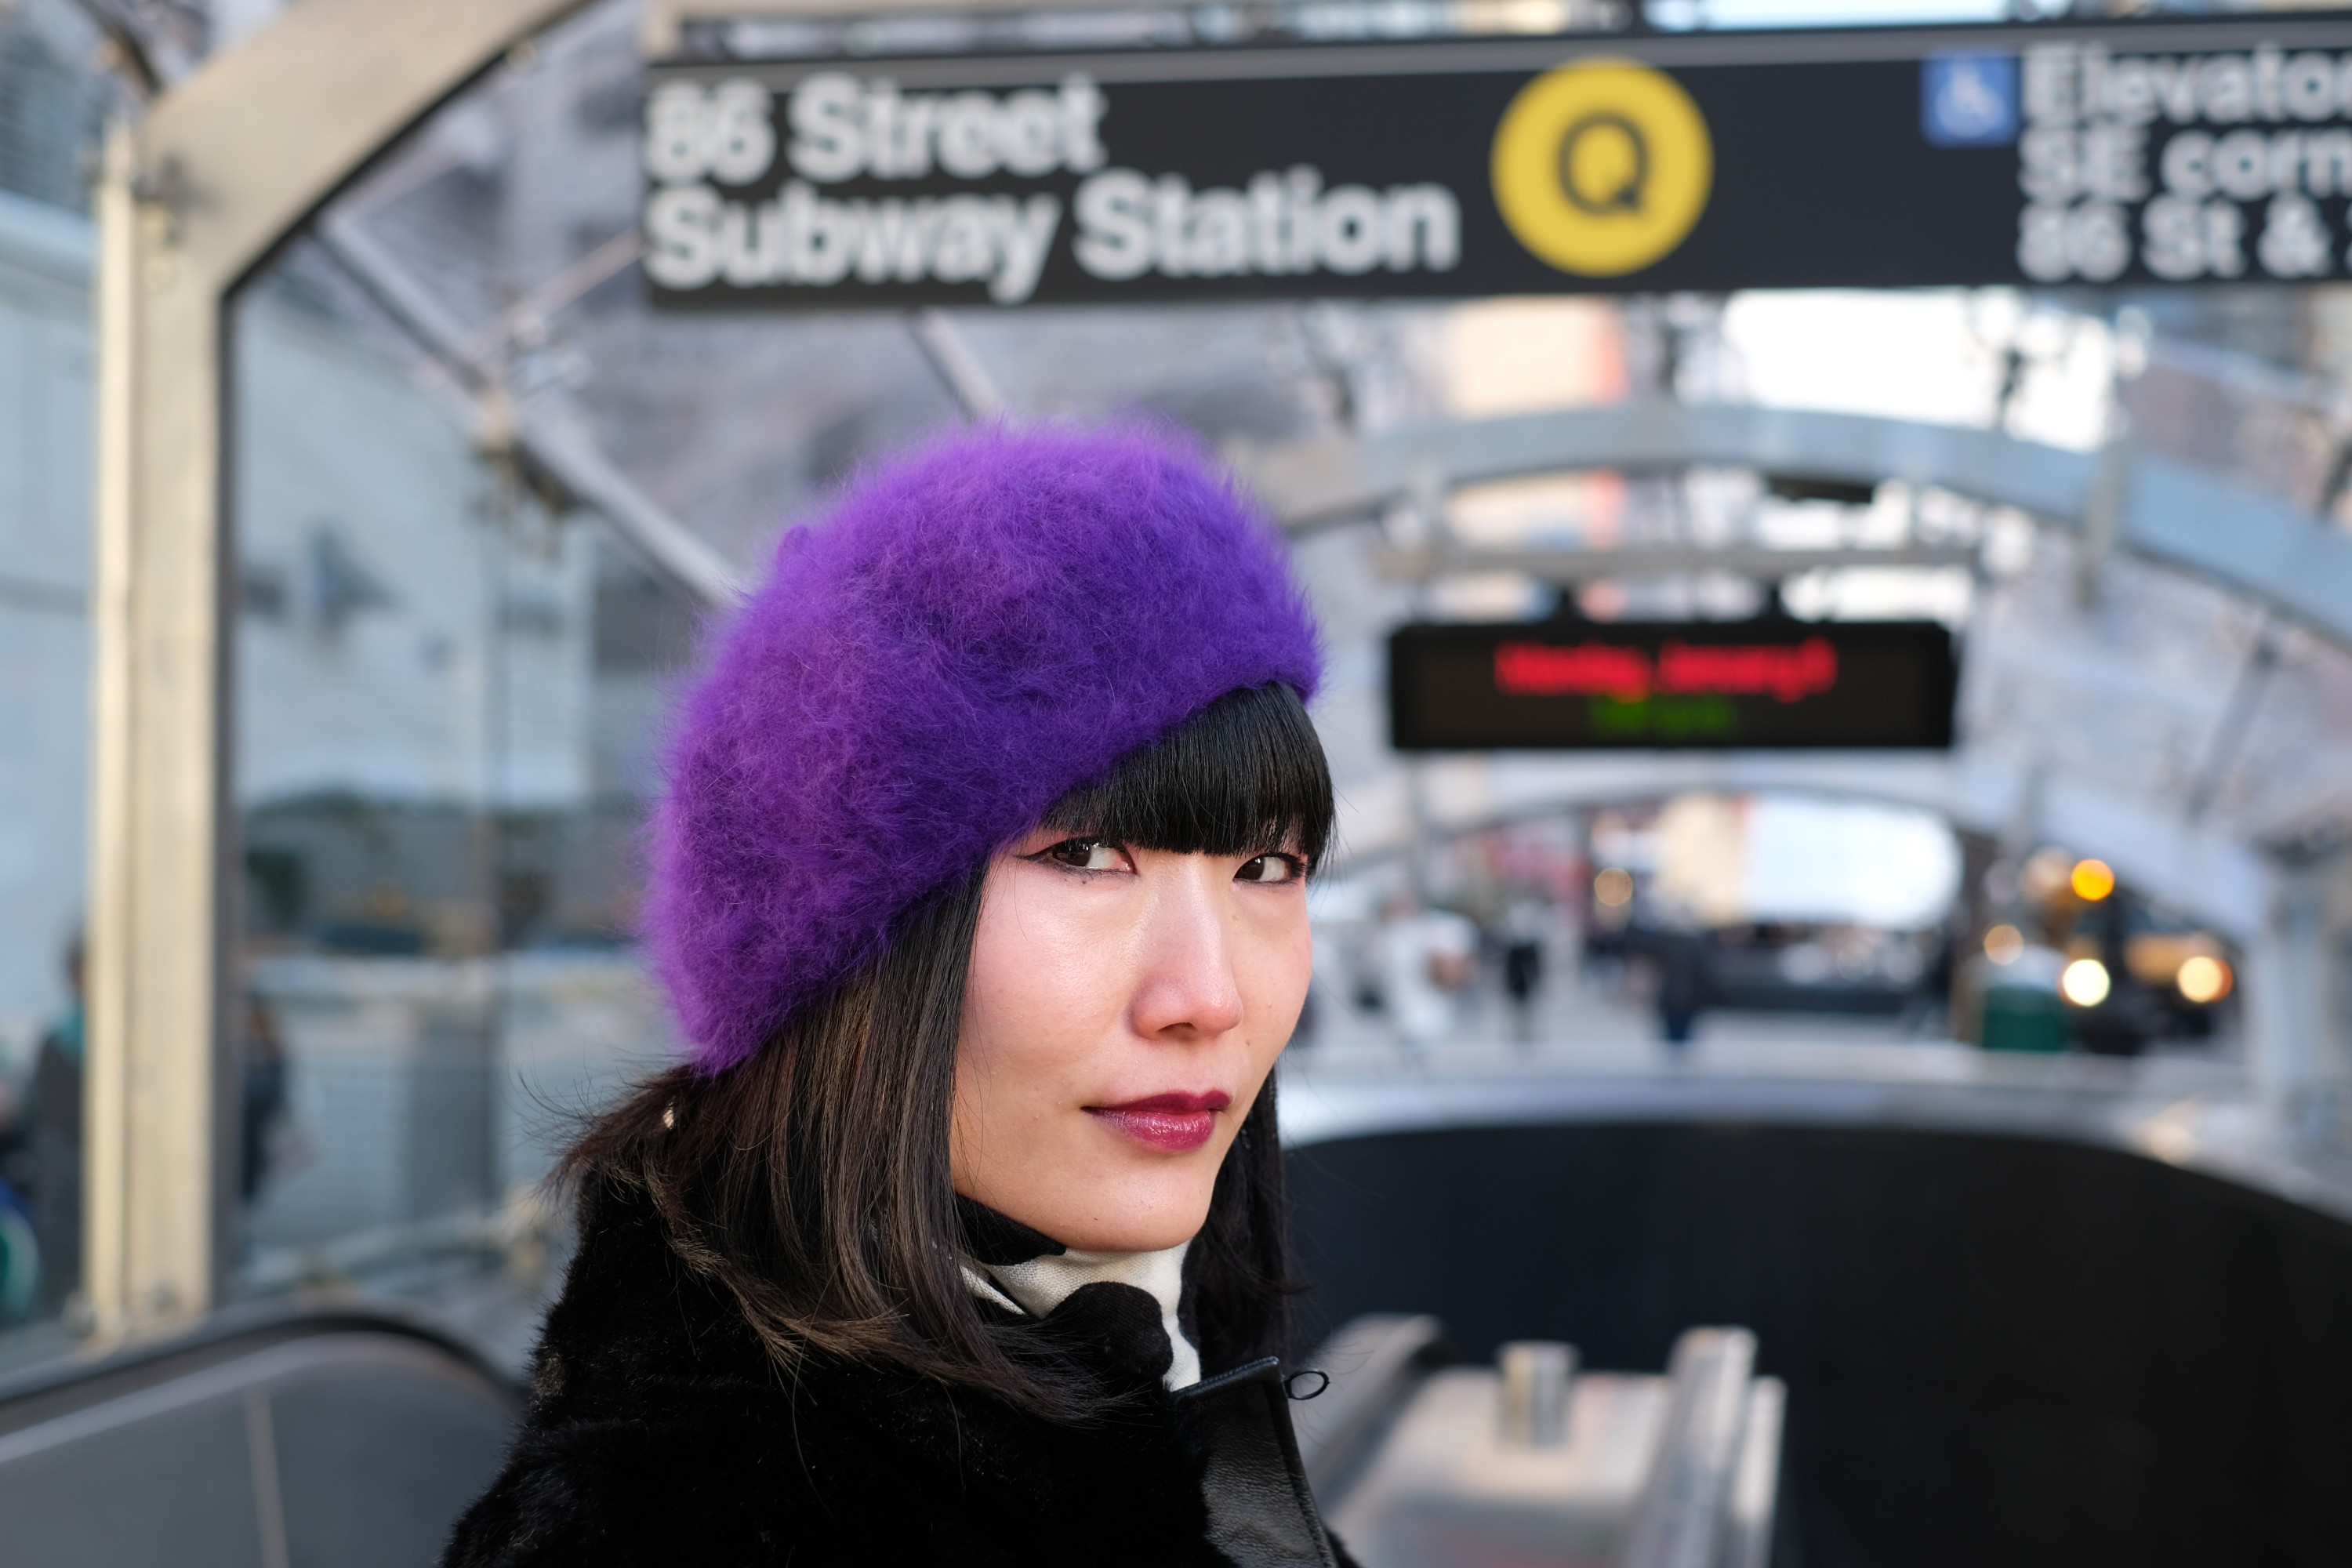 Girl in purple beret in front of subway station